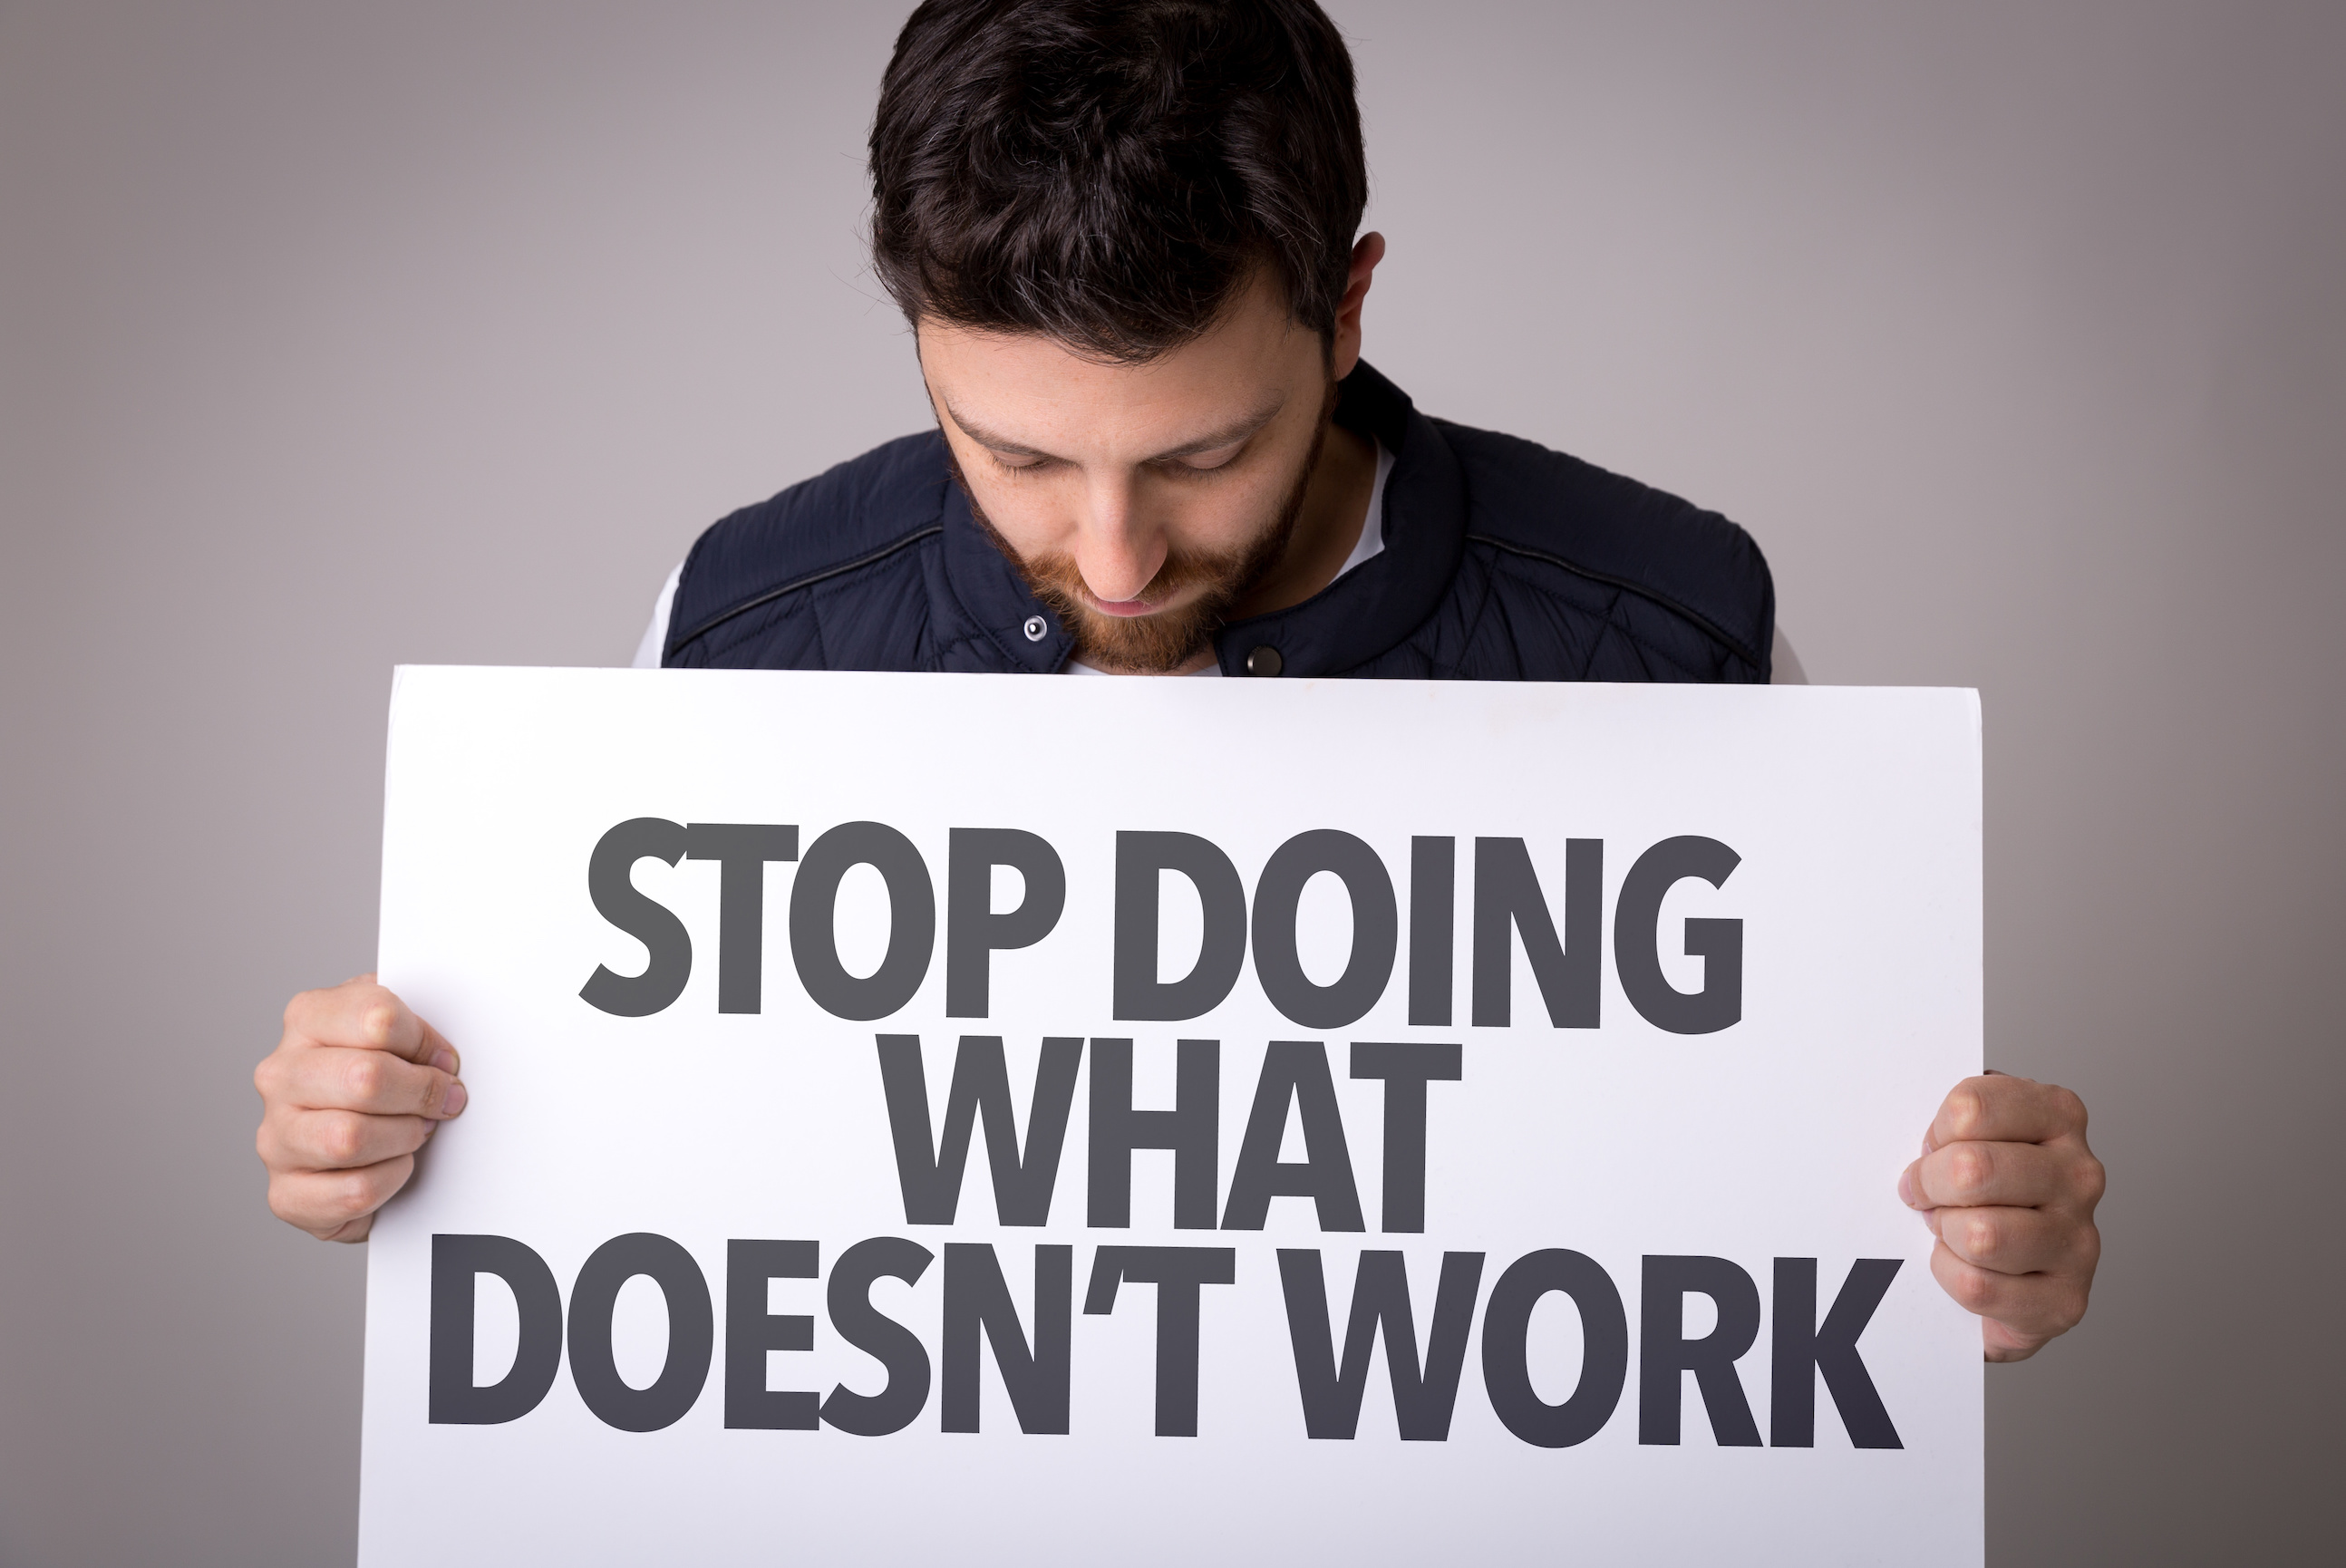 management blog - stop doing what doesn't work